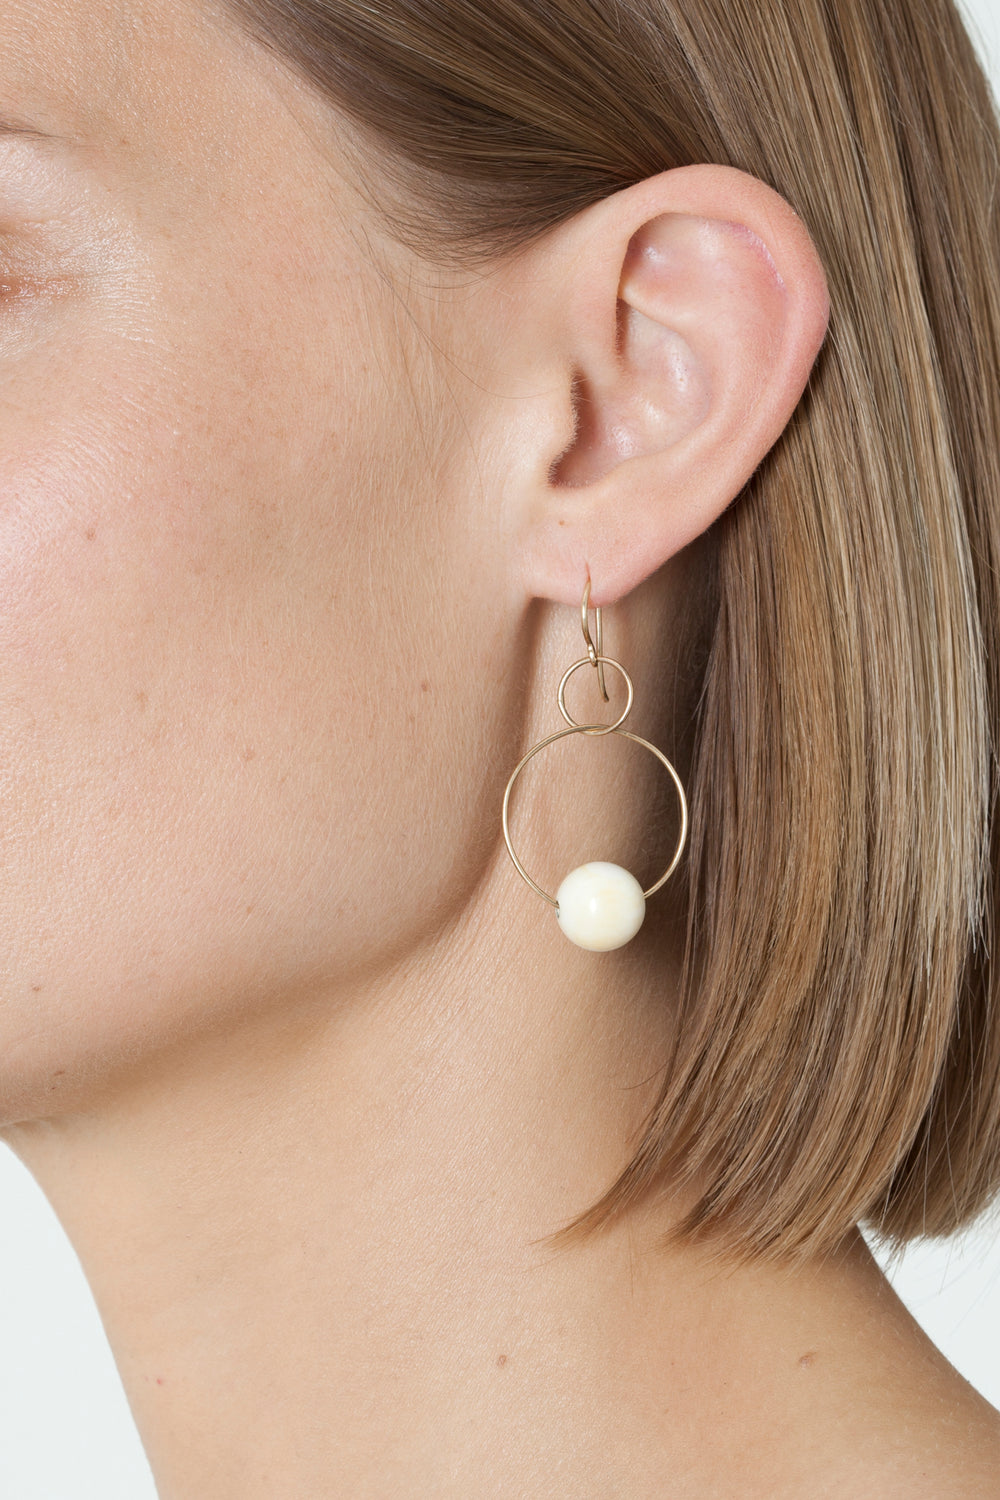 BLUNK DOUBLE HOOP EARRINGS - Gold & Bone